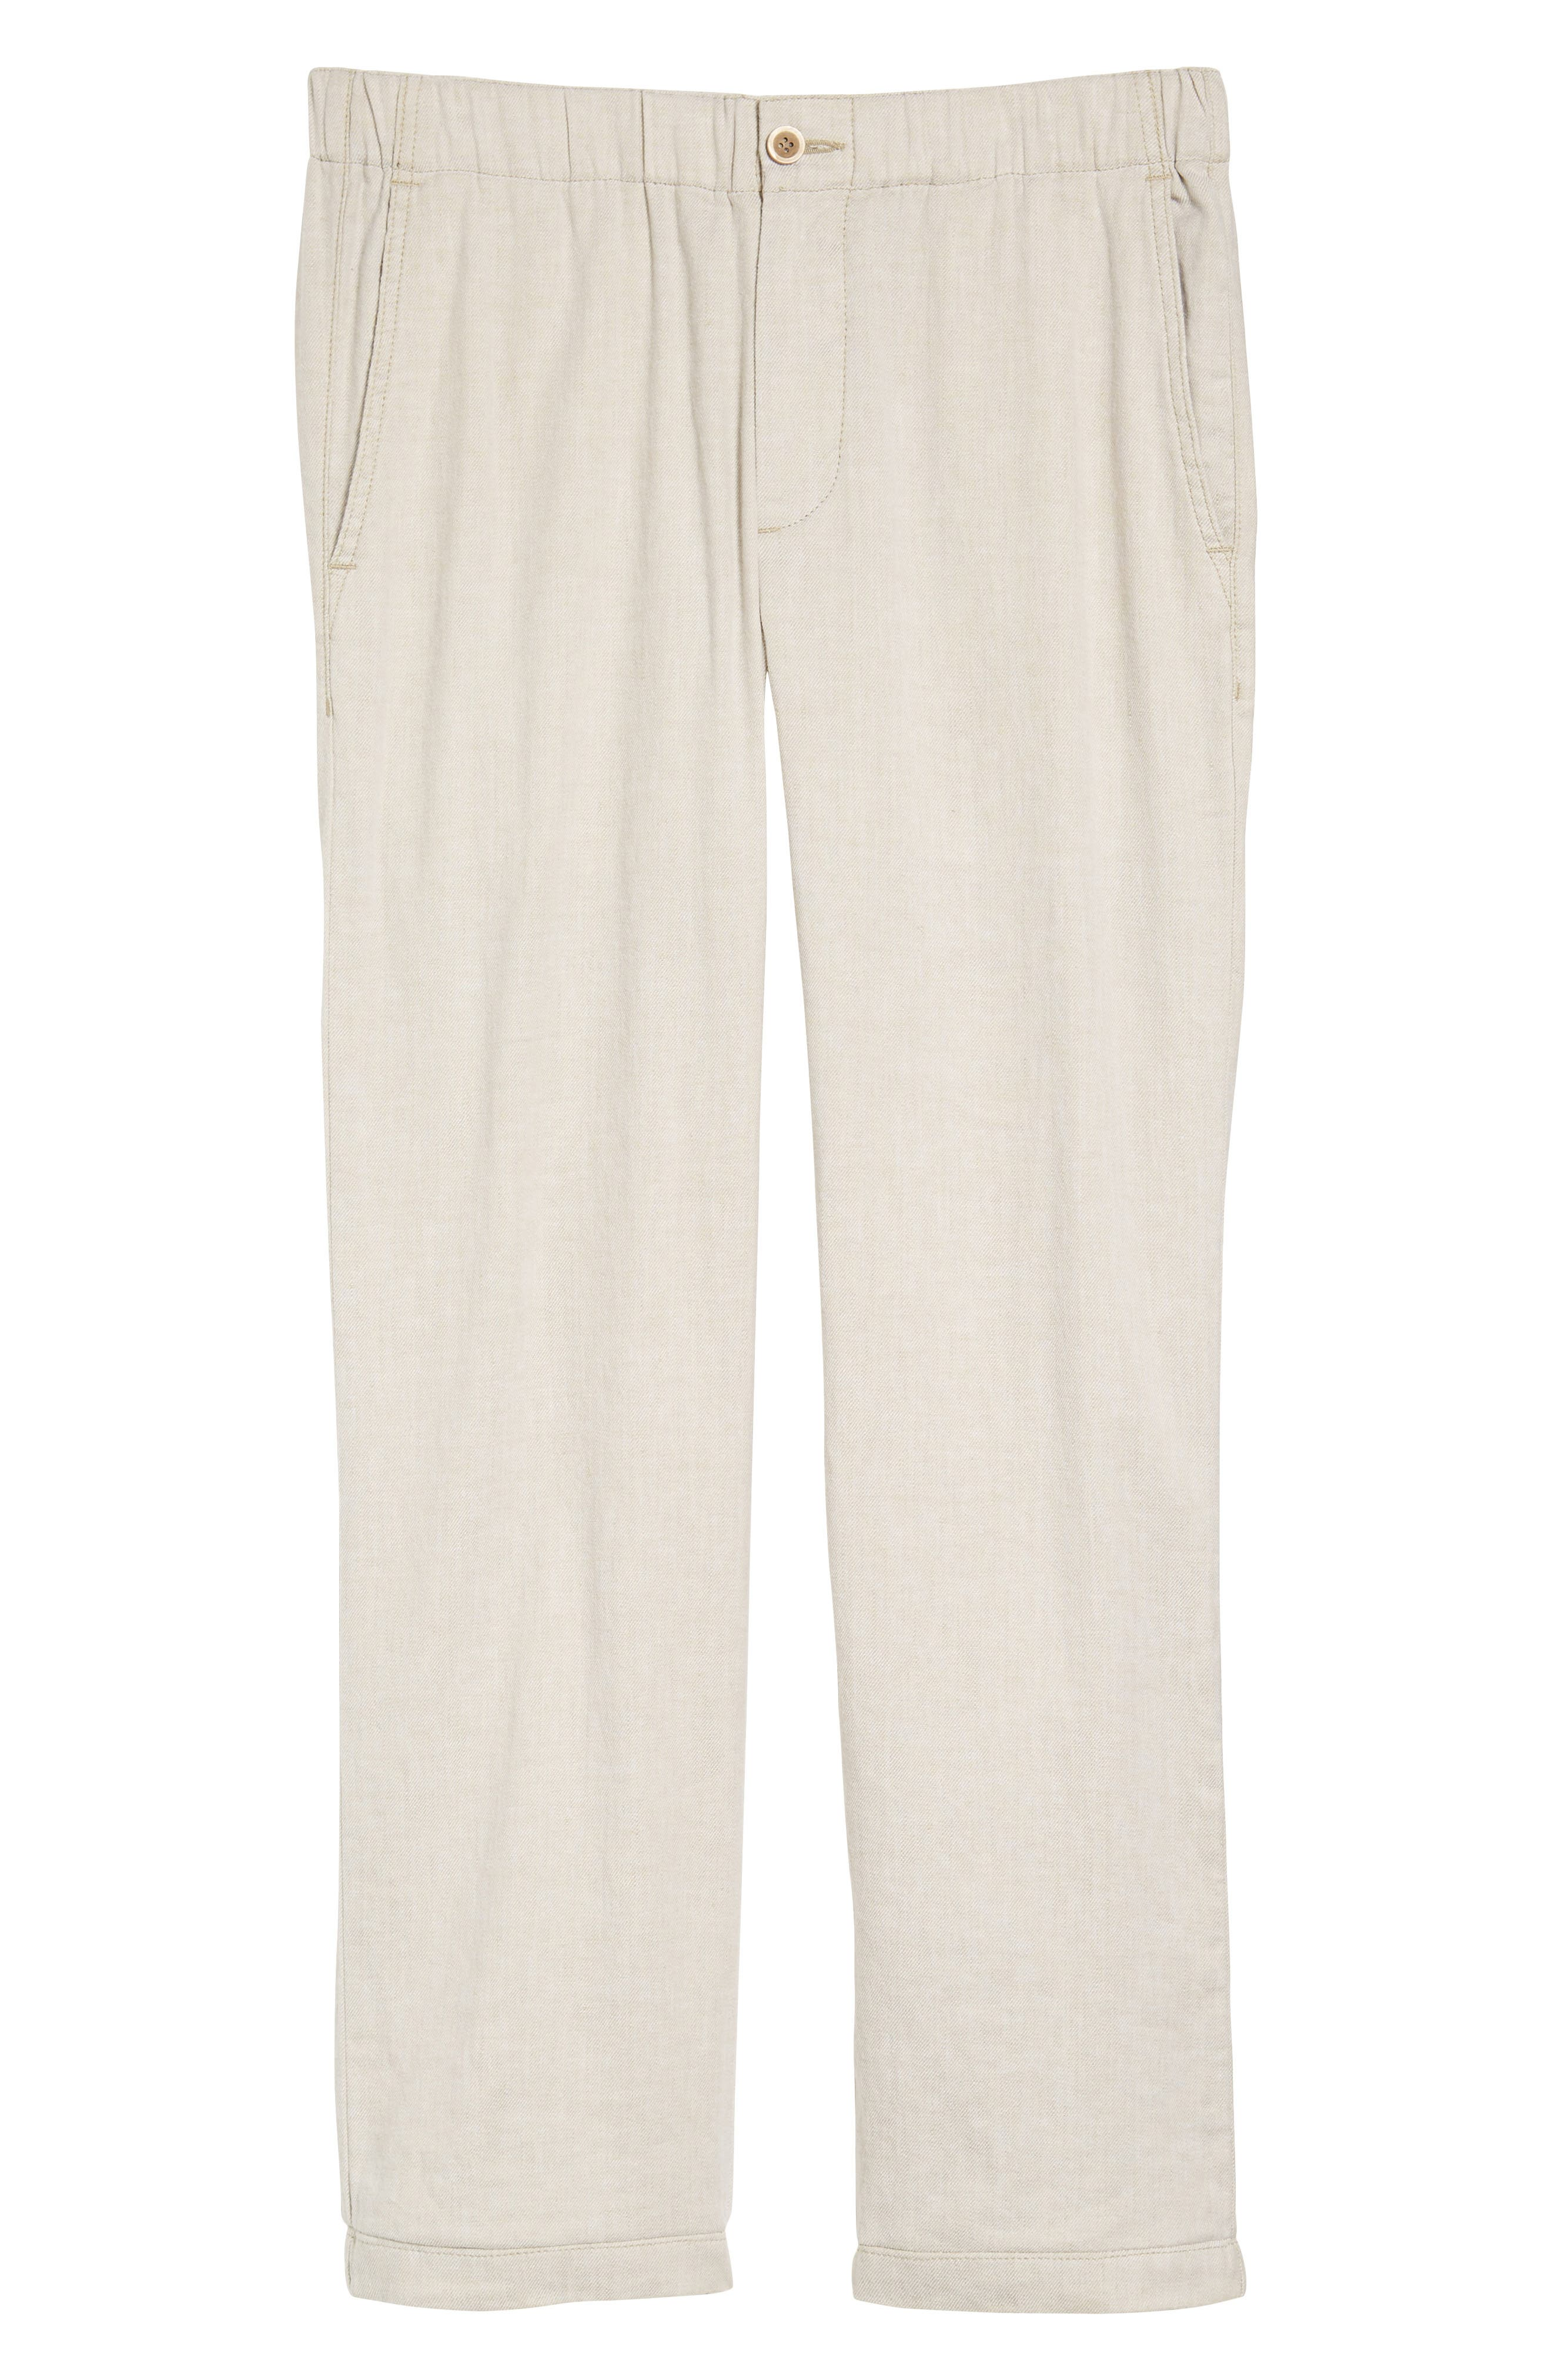 TOMMY BAHAMA,                             Beach Linen Blend Pants,                             Alternate thumbnail 6, color,                             STONE KHAKI